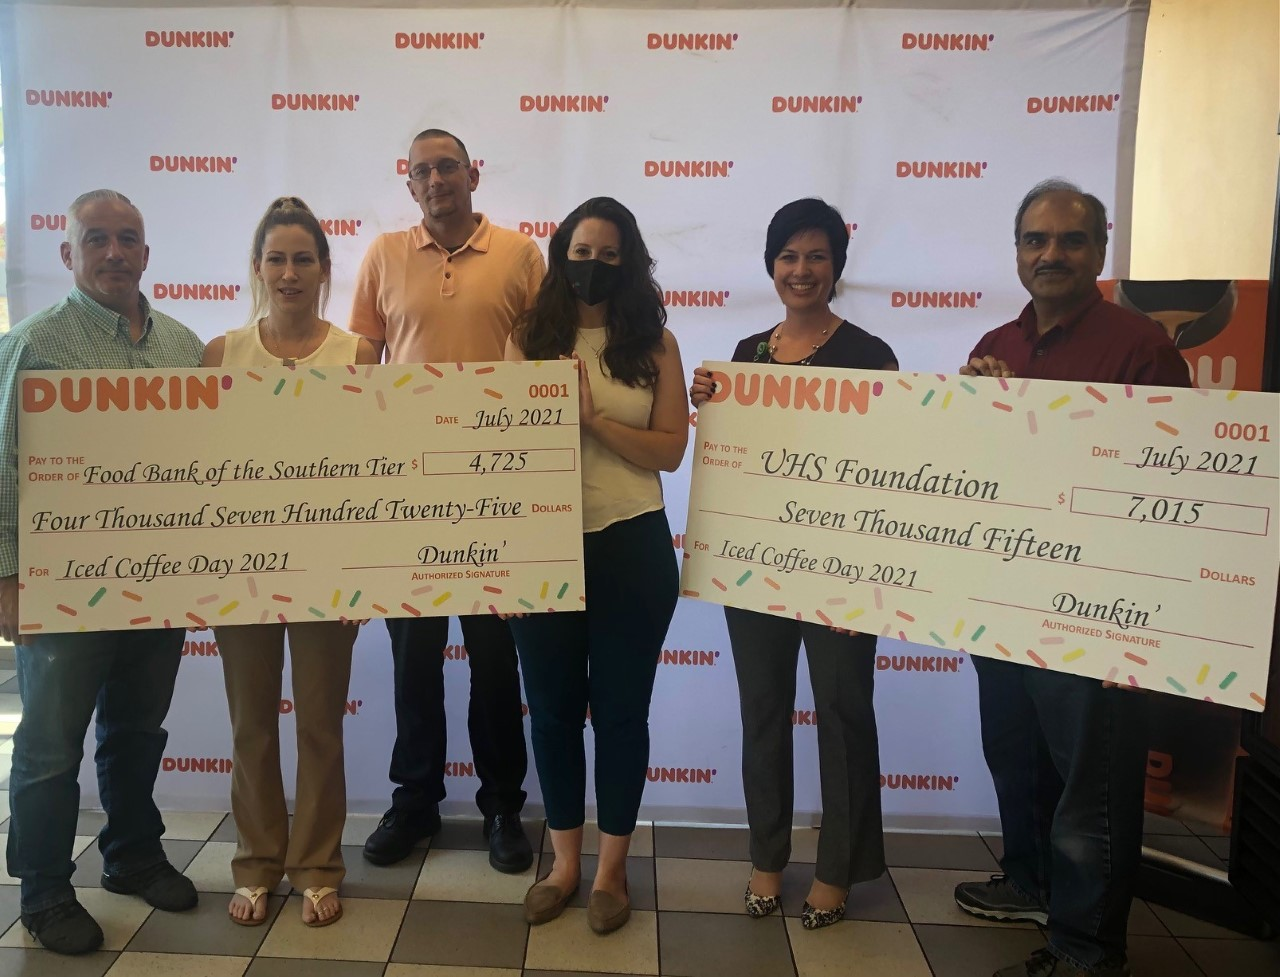 Dunkin presents donations to the UHS Foundation for $7,015 and the Food Bank of the Southern Tier for $4,725 at the Dunkin' located at 3000 Vestal Parkway in Vestal, NY. The donations are the result of Dunkin's annual Iced Coffee Day fundraising campaign, held on May 26 at participating Dunkin' restaurants throughout the Southern Tier.